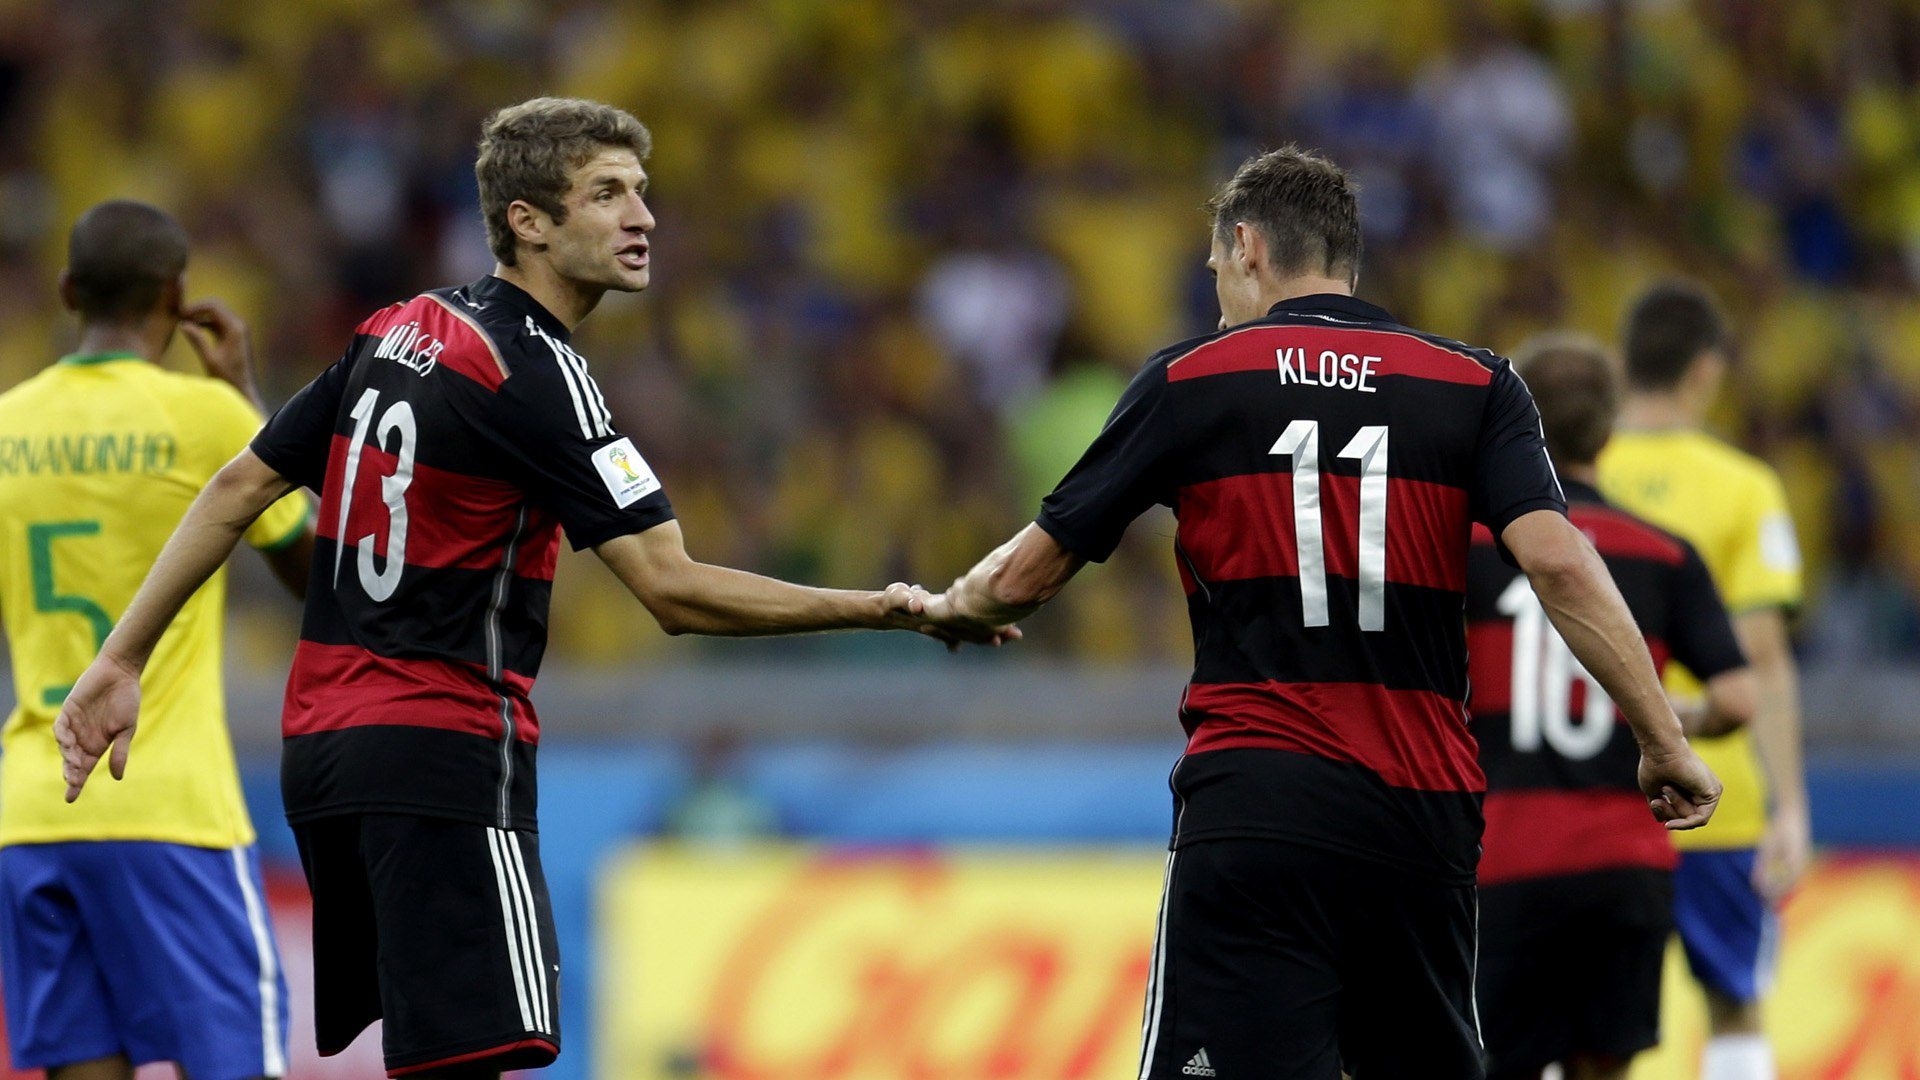 Miroslav Klose and Thomas Muller – Conjoined Twins